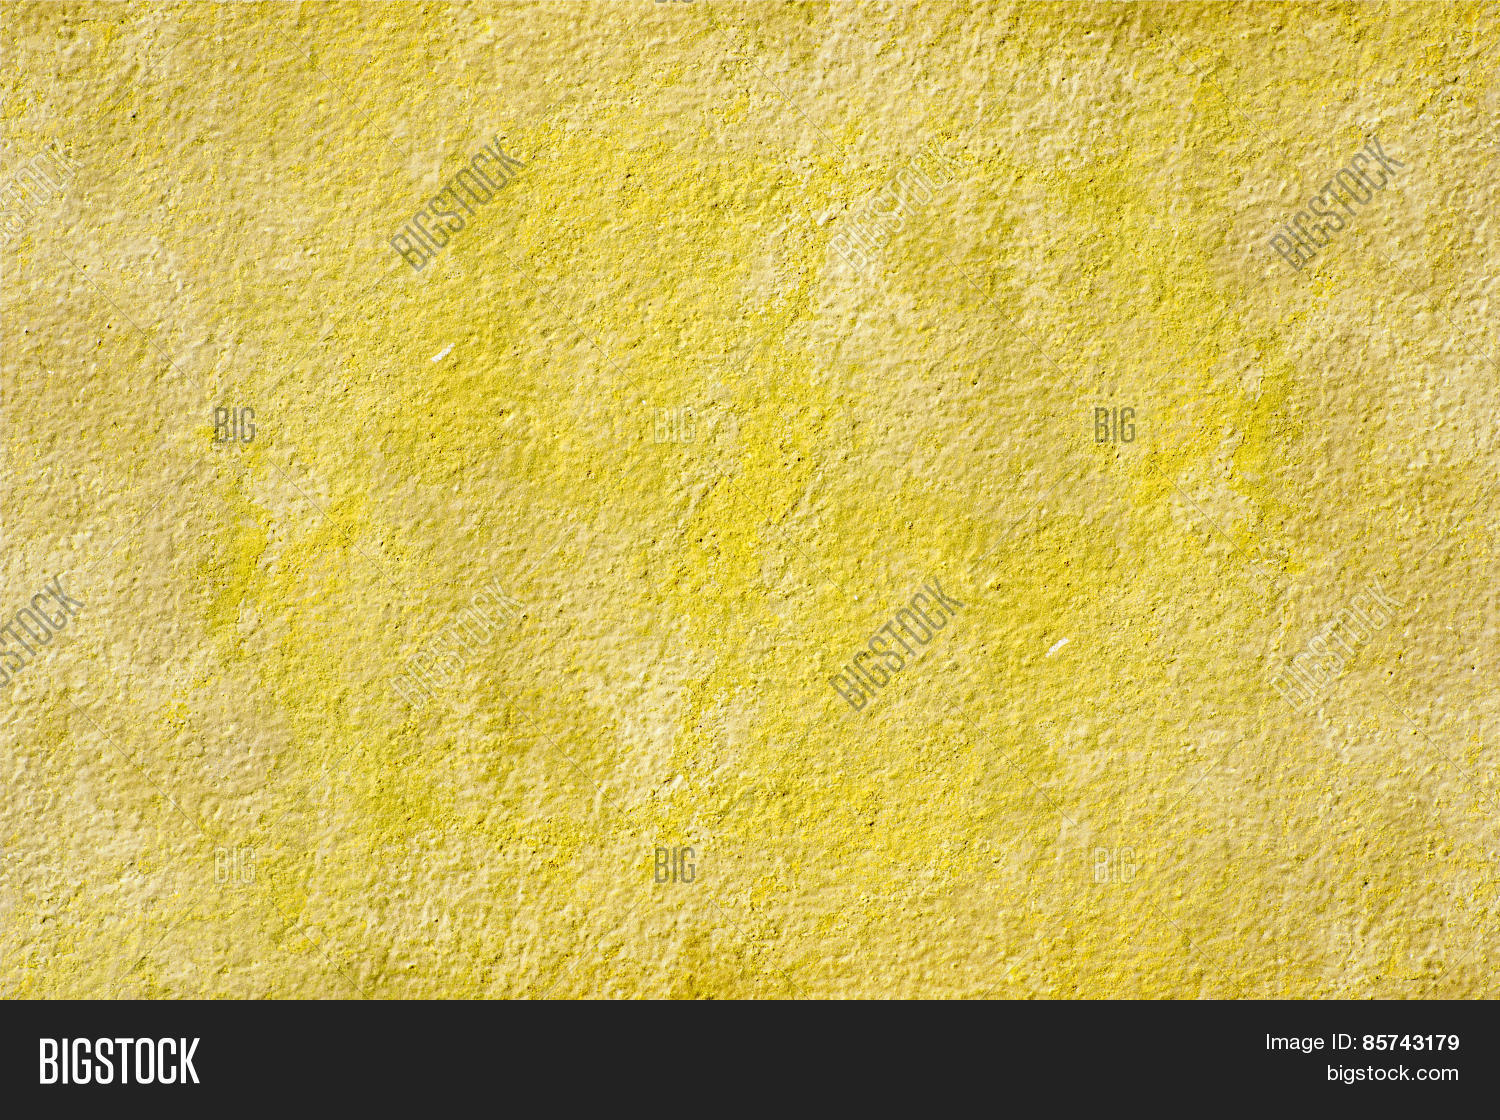 Yellow Grunge Texture Yellow Grunge Wall For...